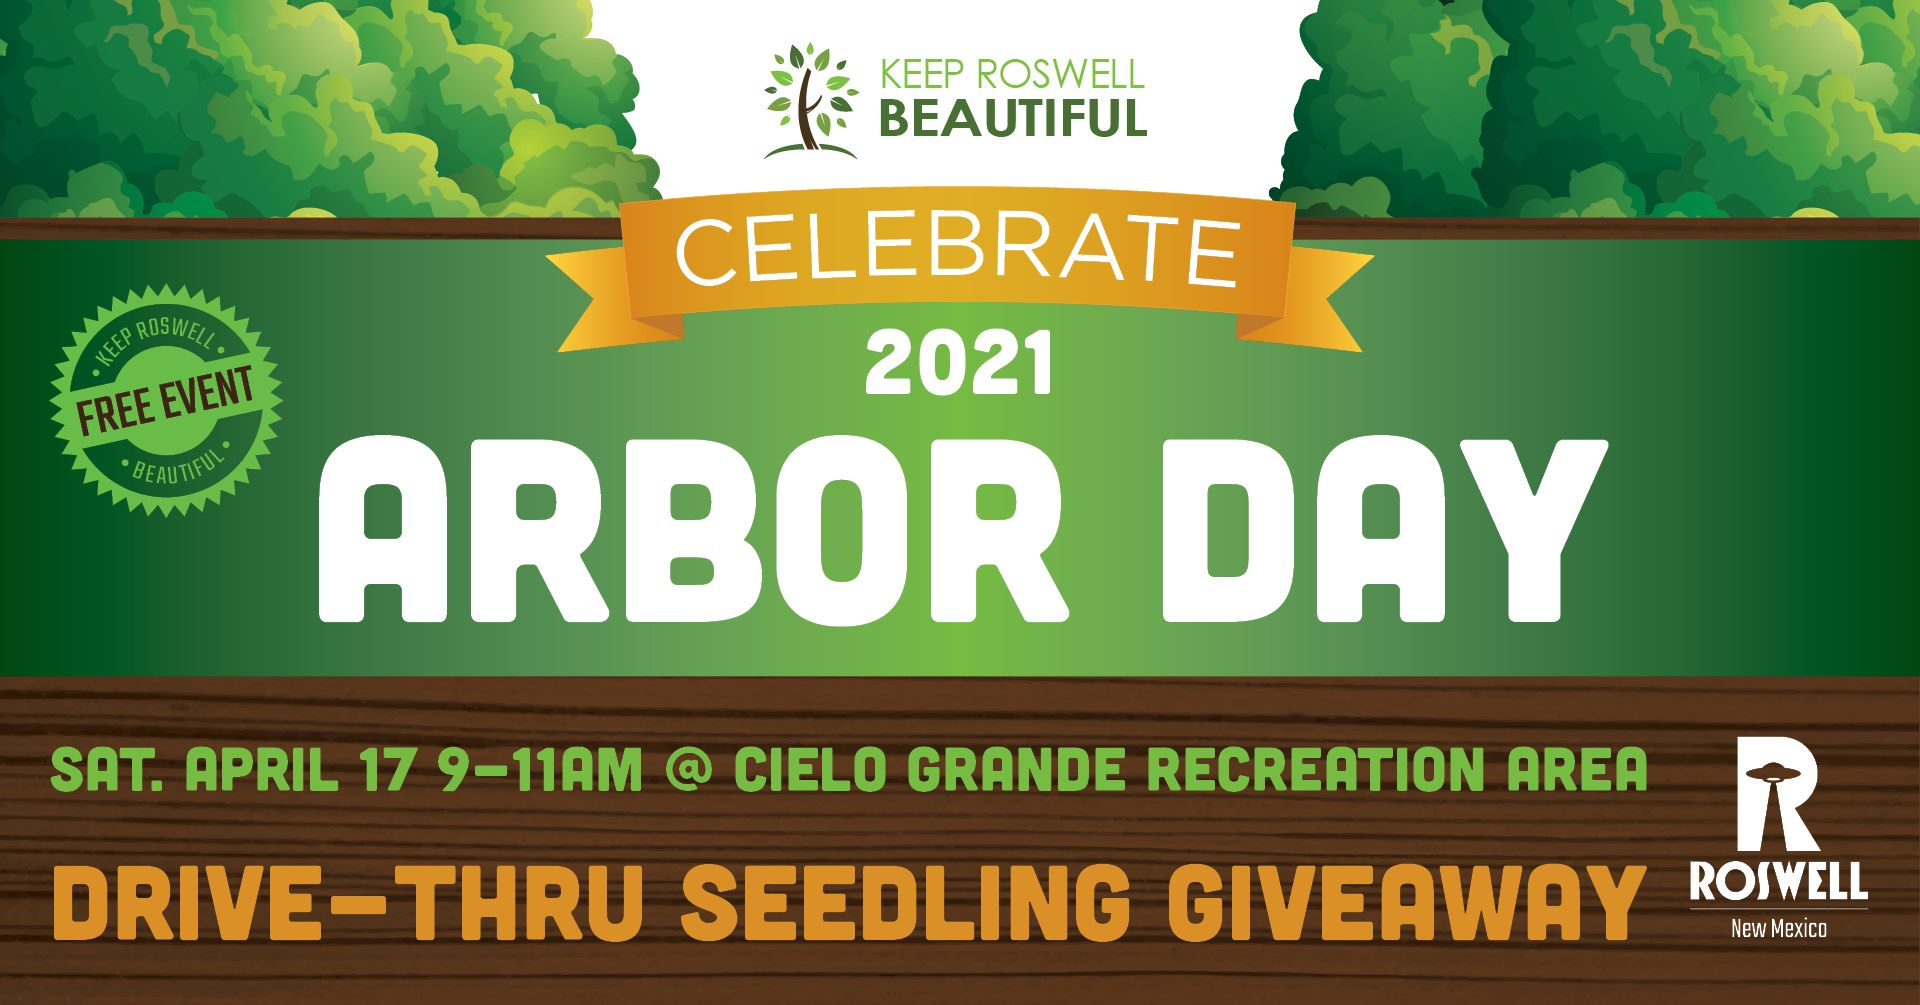 Arbor Day 2021 seedling giveway